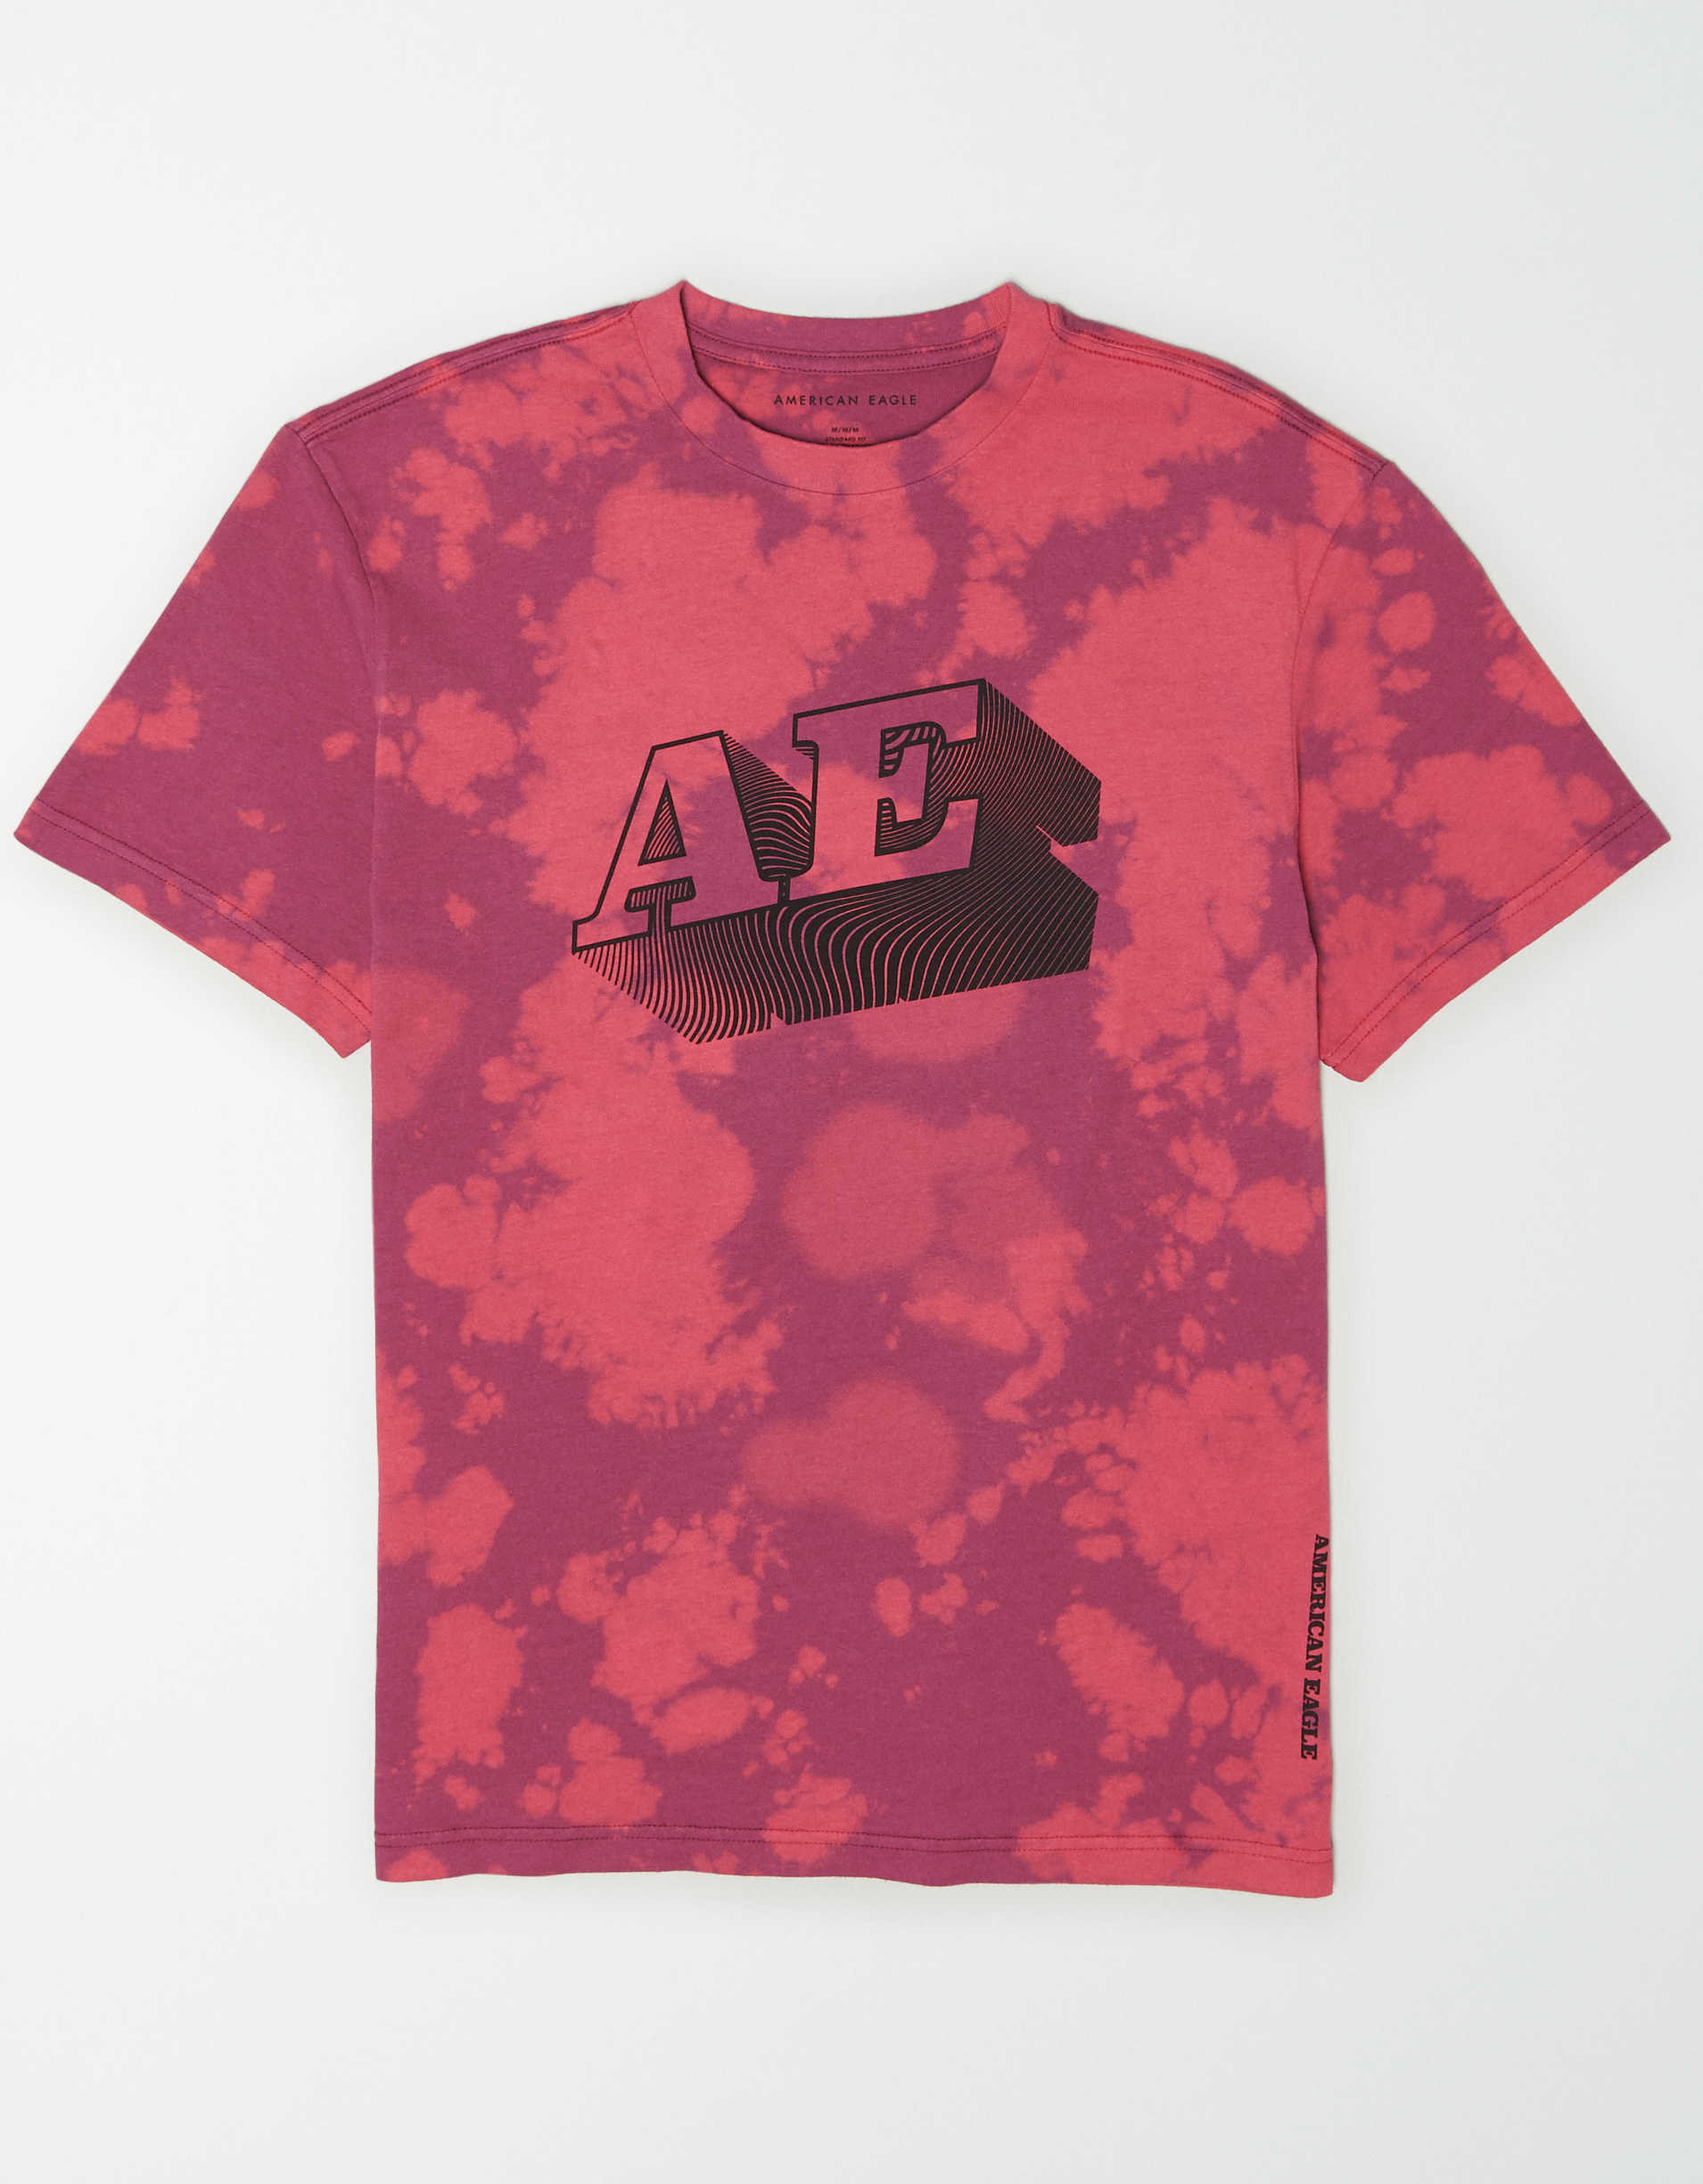 AE Dye Effects Graphic T-Shirt